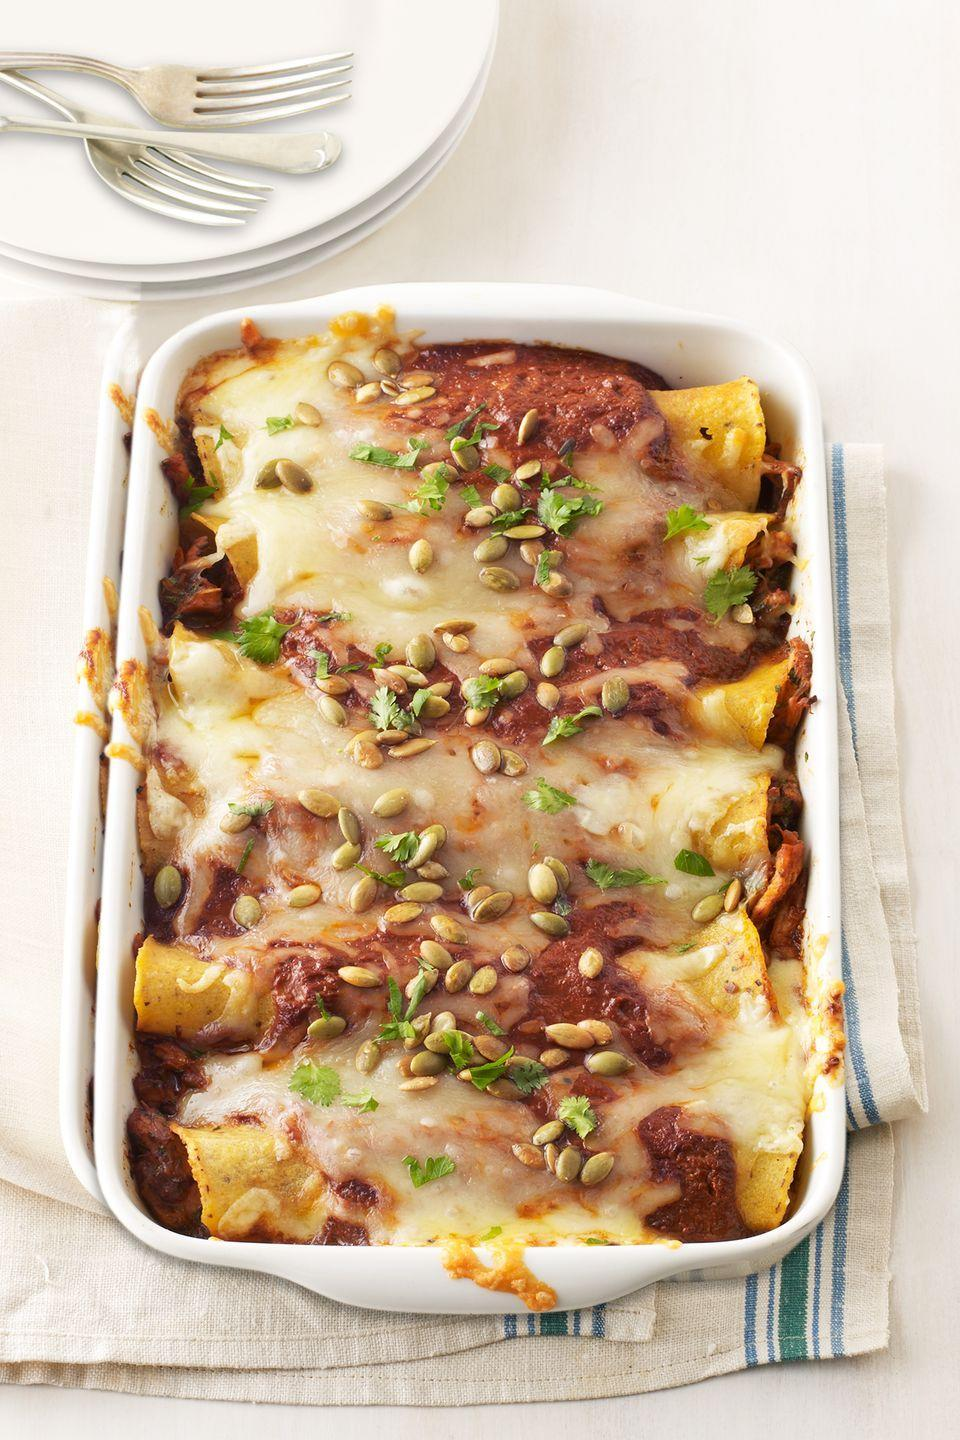 """<p>Pumpkin seeds, cilantro, and spicy chiles give your extra turkey new life and flavor.</p><p><strong><a href=""""https://www.countryliving.com/food-drinks/recipes/a33408/turkey-enchiladas-recipe-wdy1112/"""" rel=""""nofollow noopener"""" target=""""_blank"""" data-ylk=""""slk:Get the recipe"""" class=""""link rapid-noclick-resp"""">Get the recipe</a>.</strong></p><p><strong><a class=""""link rapid-noclick-resp"""" href=""""https://www.amazon.com/charola-rectangular-cl%C3%A1sica-grande-blanco/dp/B00WRIIREY/?tag=syn-yahoo-20&ascsubtag=%5Bartid%7C10050.g.1064%5Bsrc%7Cyahoo-us"""" rel=""""nofollow noopener"""" target=""""_blank"""" data-ylk=""""slk:SHOP BAKING DISHES"""">SHOP BAKING DISHES</a></strong></p>"""